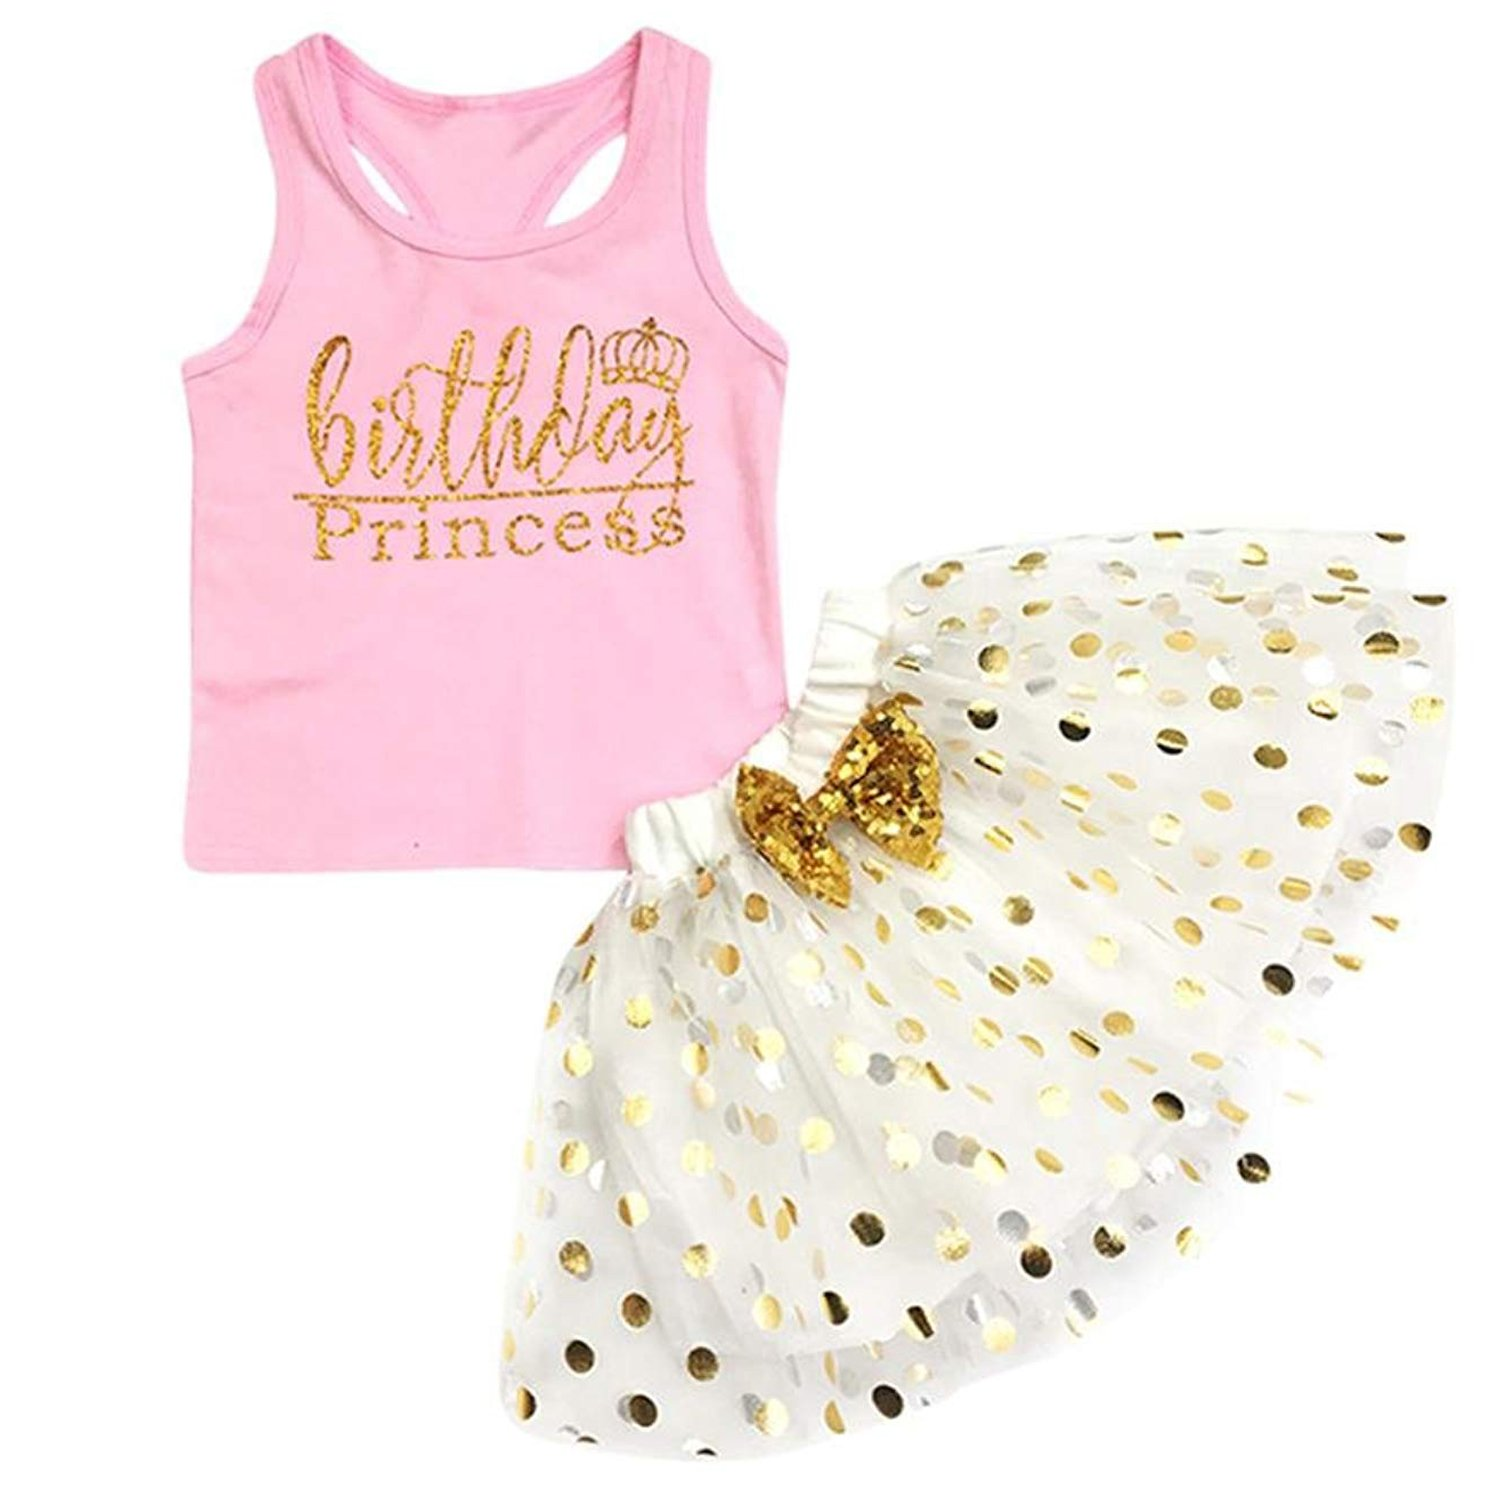 Toddler Kids Baby Girls Outfits Birthday Princess Vest Sleeveless Top +Dot Bubble Skirt Fall Clothes Set